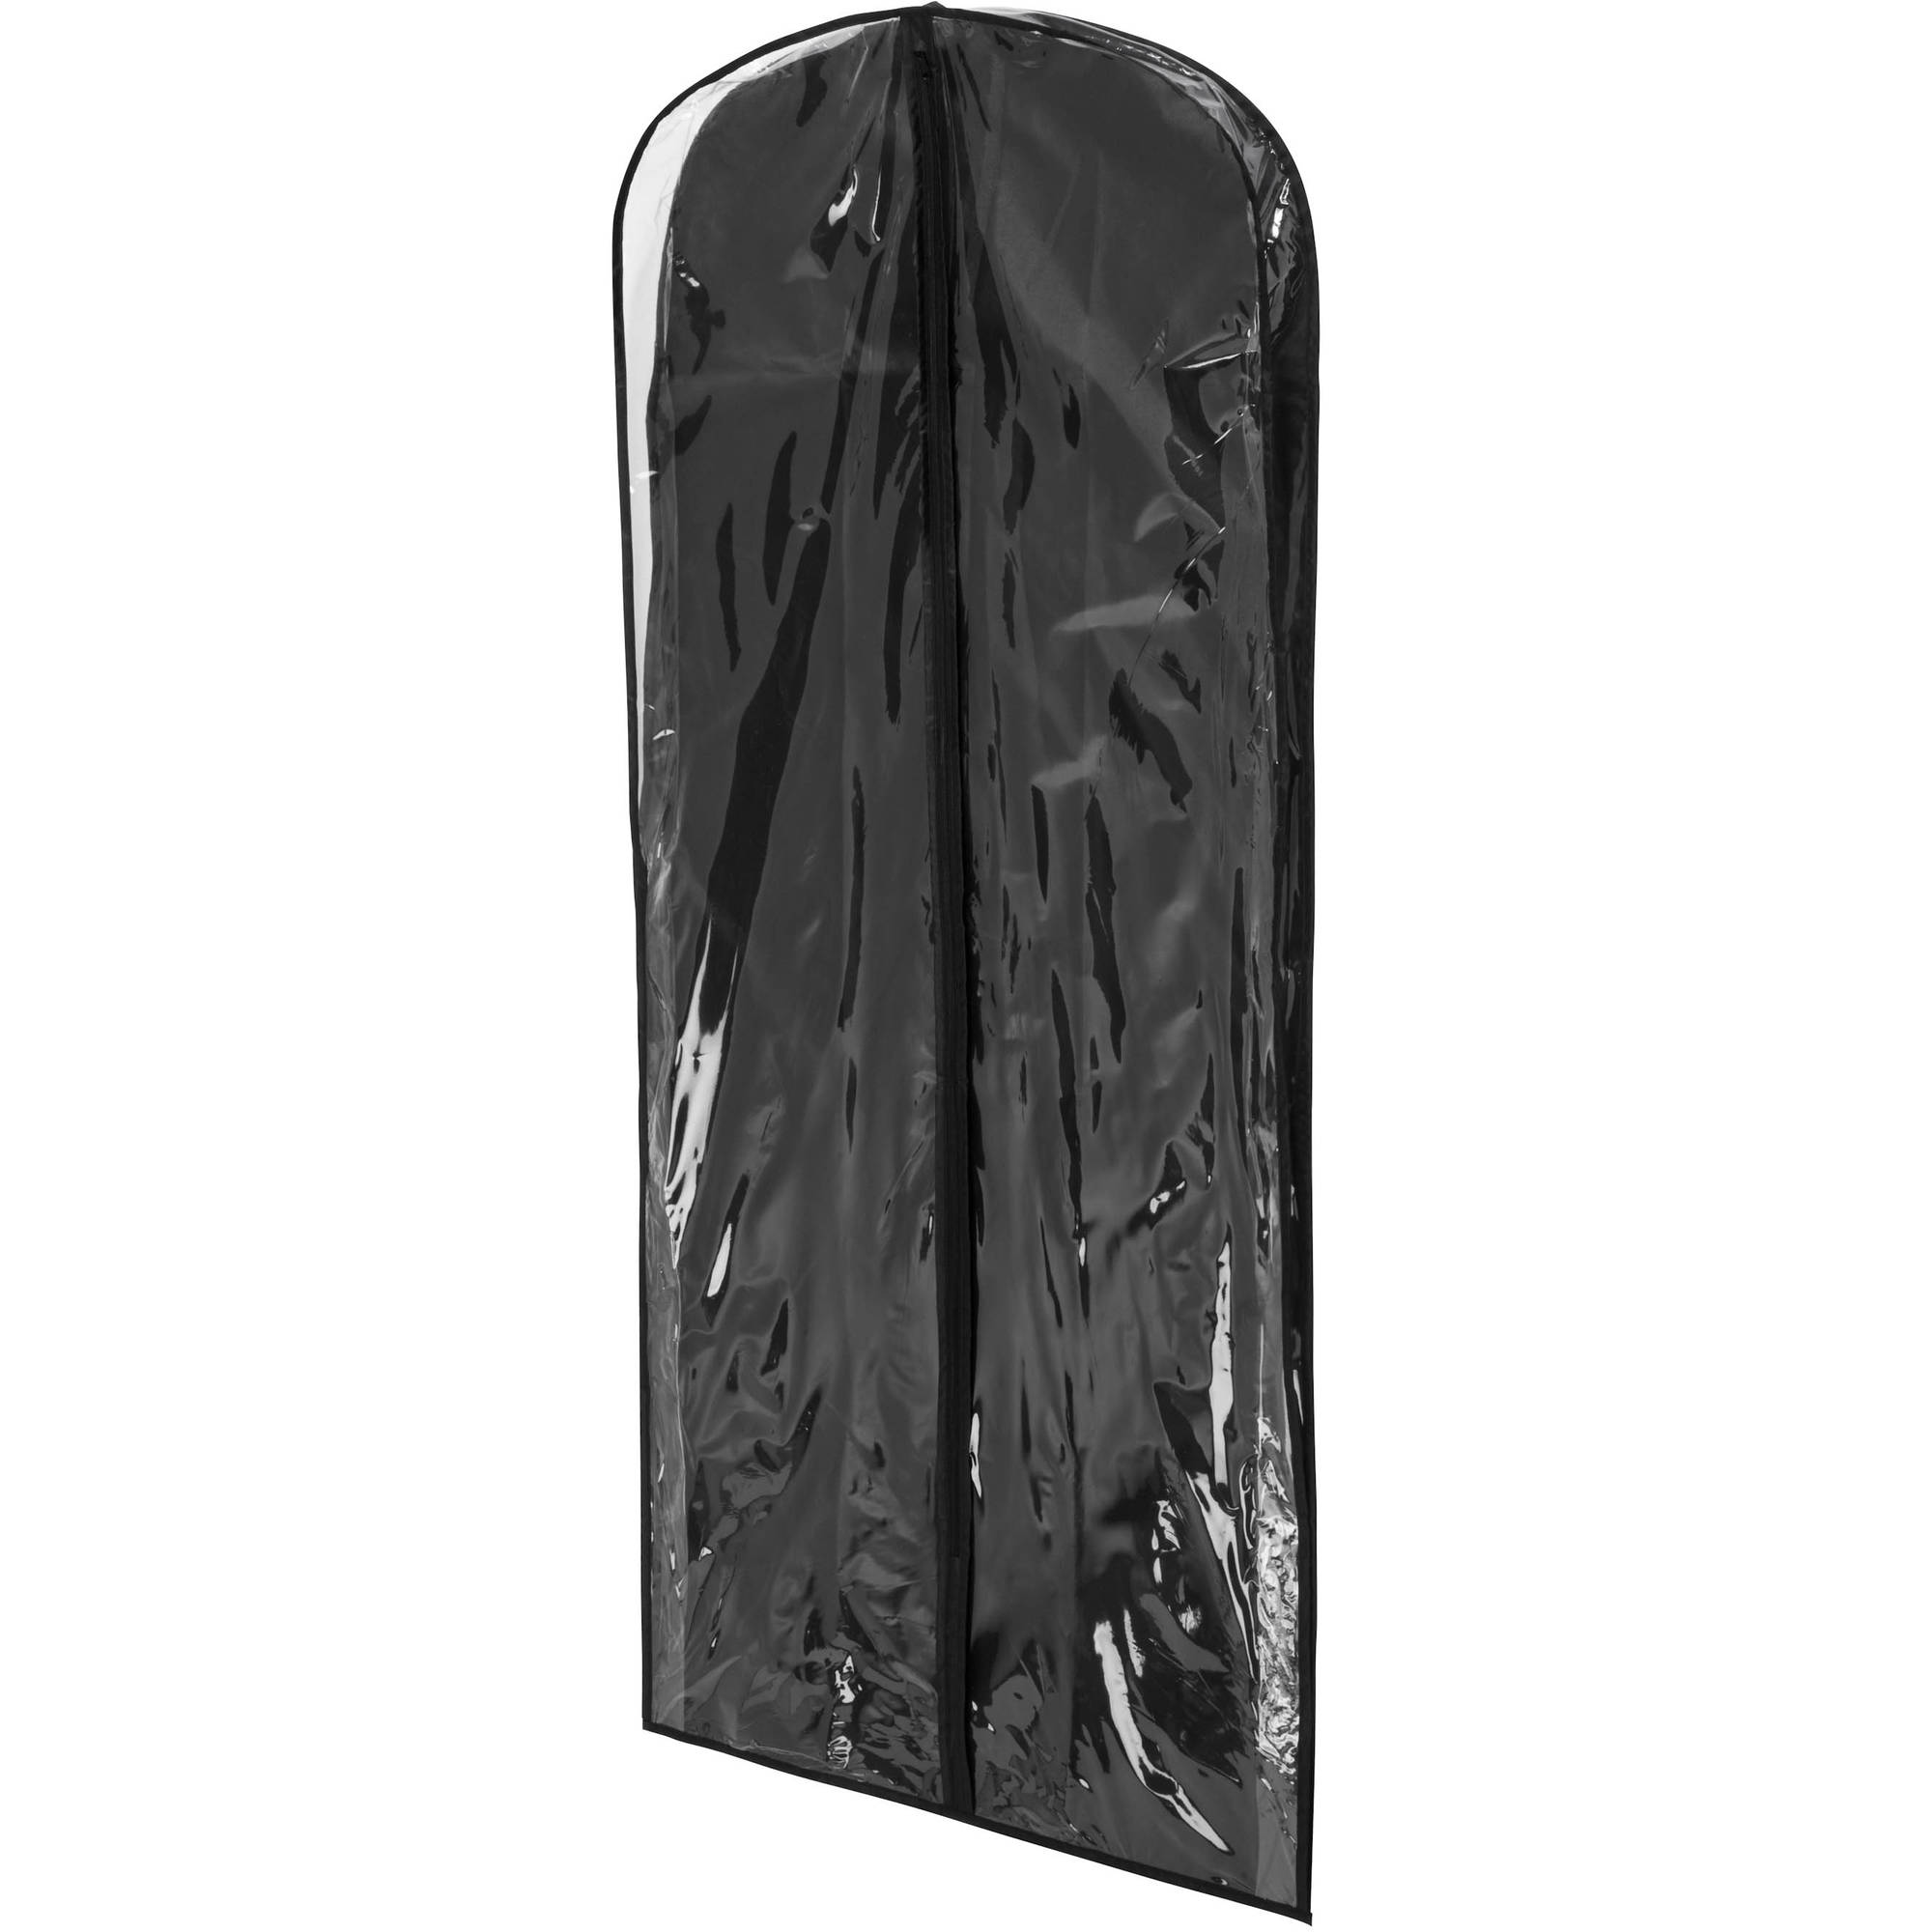 Honey Can Do Polyester Dress Bag, Black/Clear (Pack of 2)